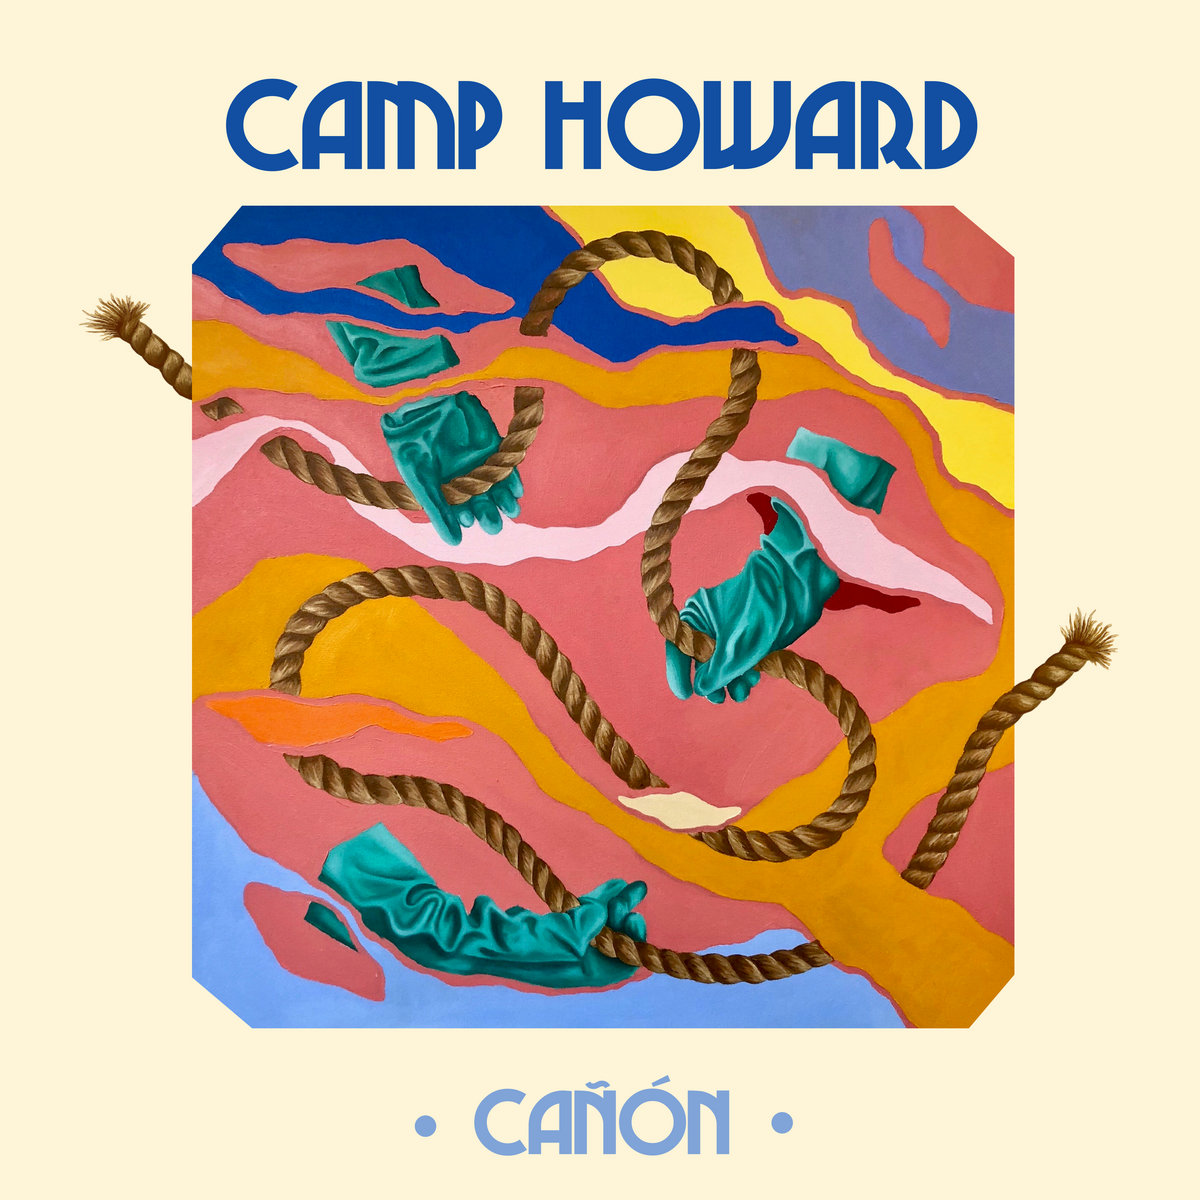 Canon Camp Howard Rokku hawādo) is a video game character appearing in various games from snk. canon